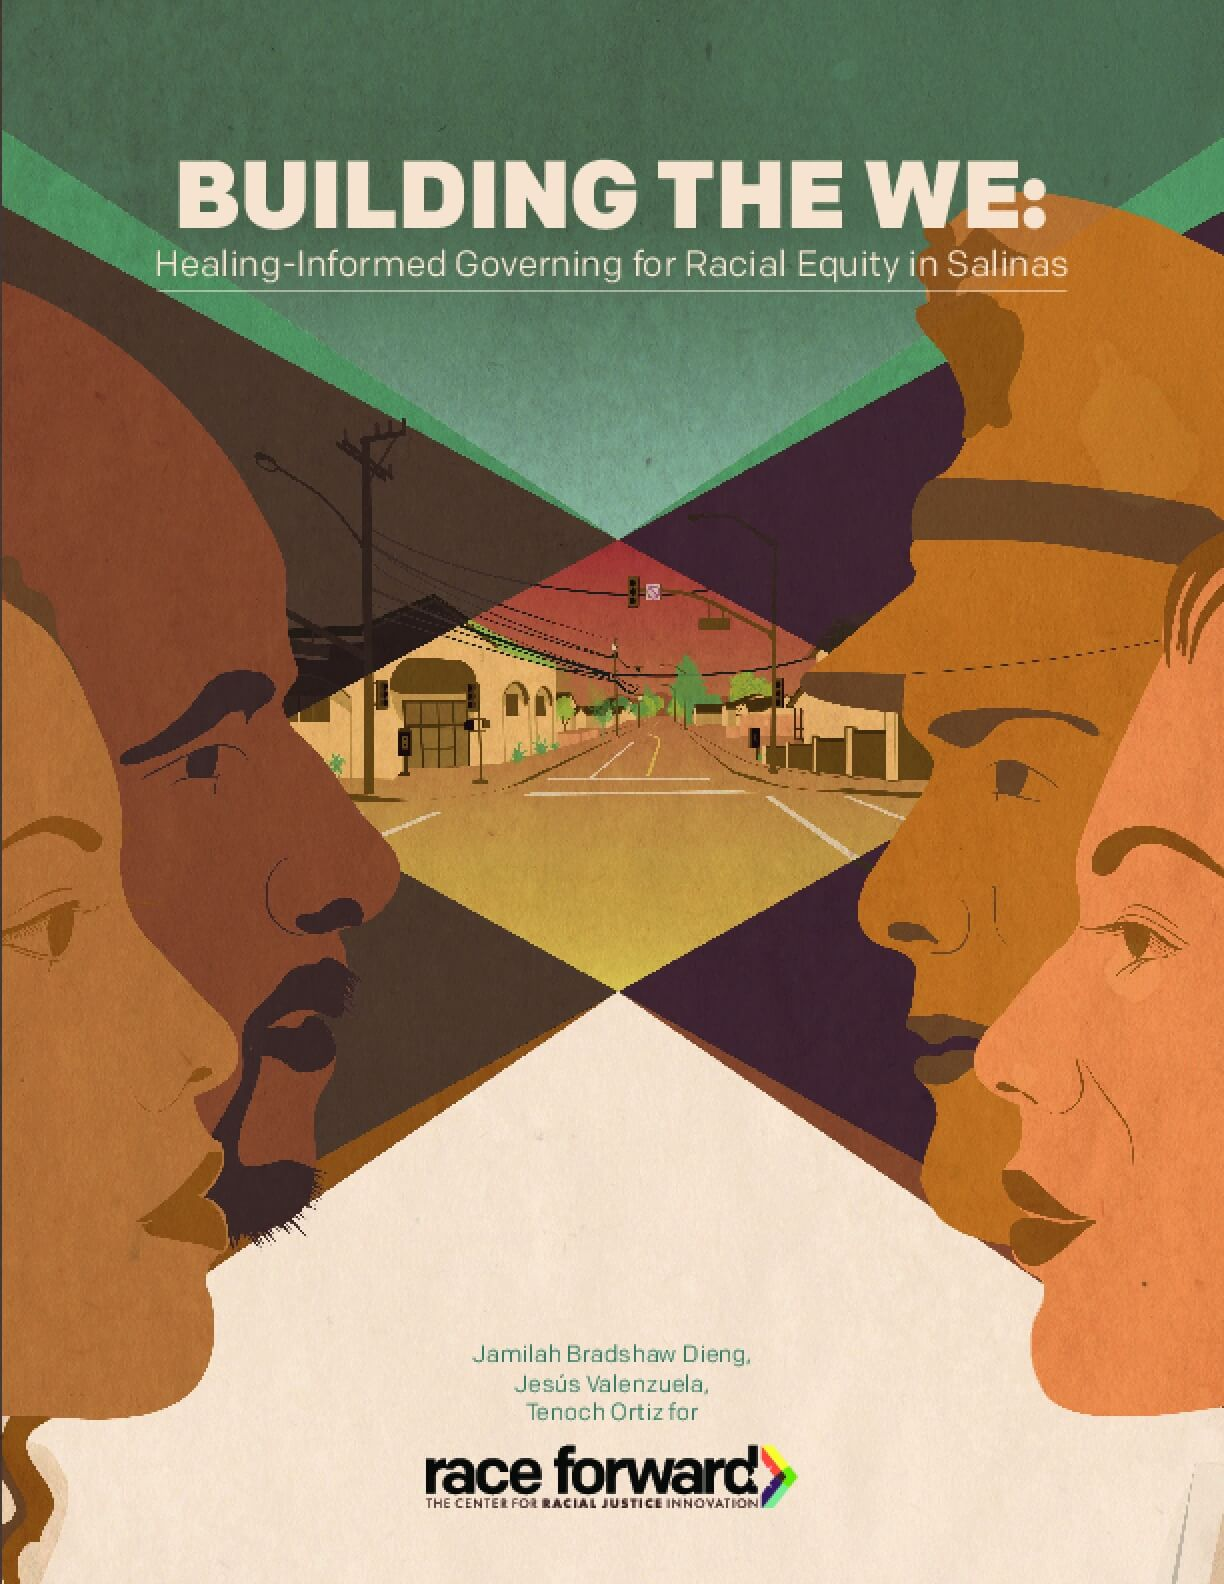 Building the We: Healing-Informed Governing for Racial Equity in Salinas